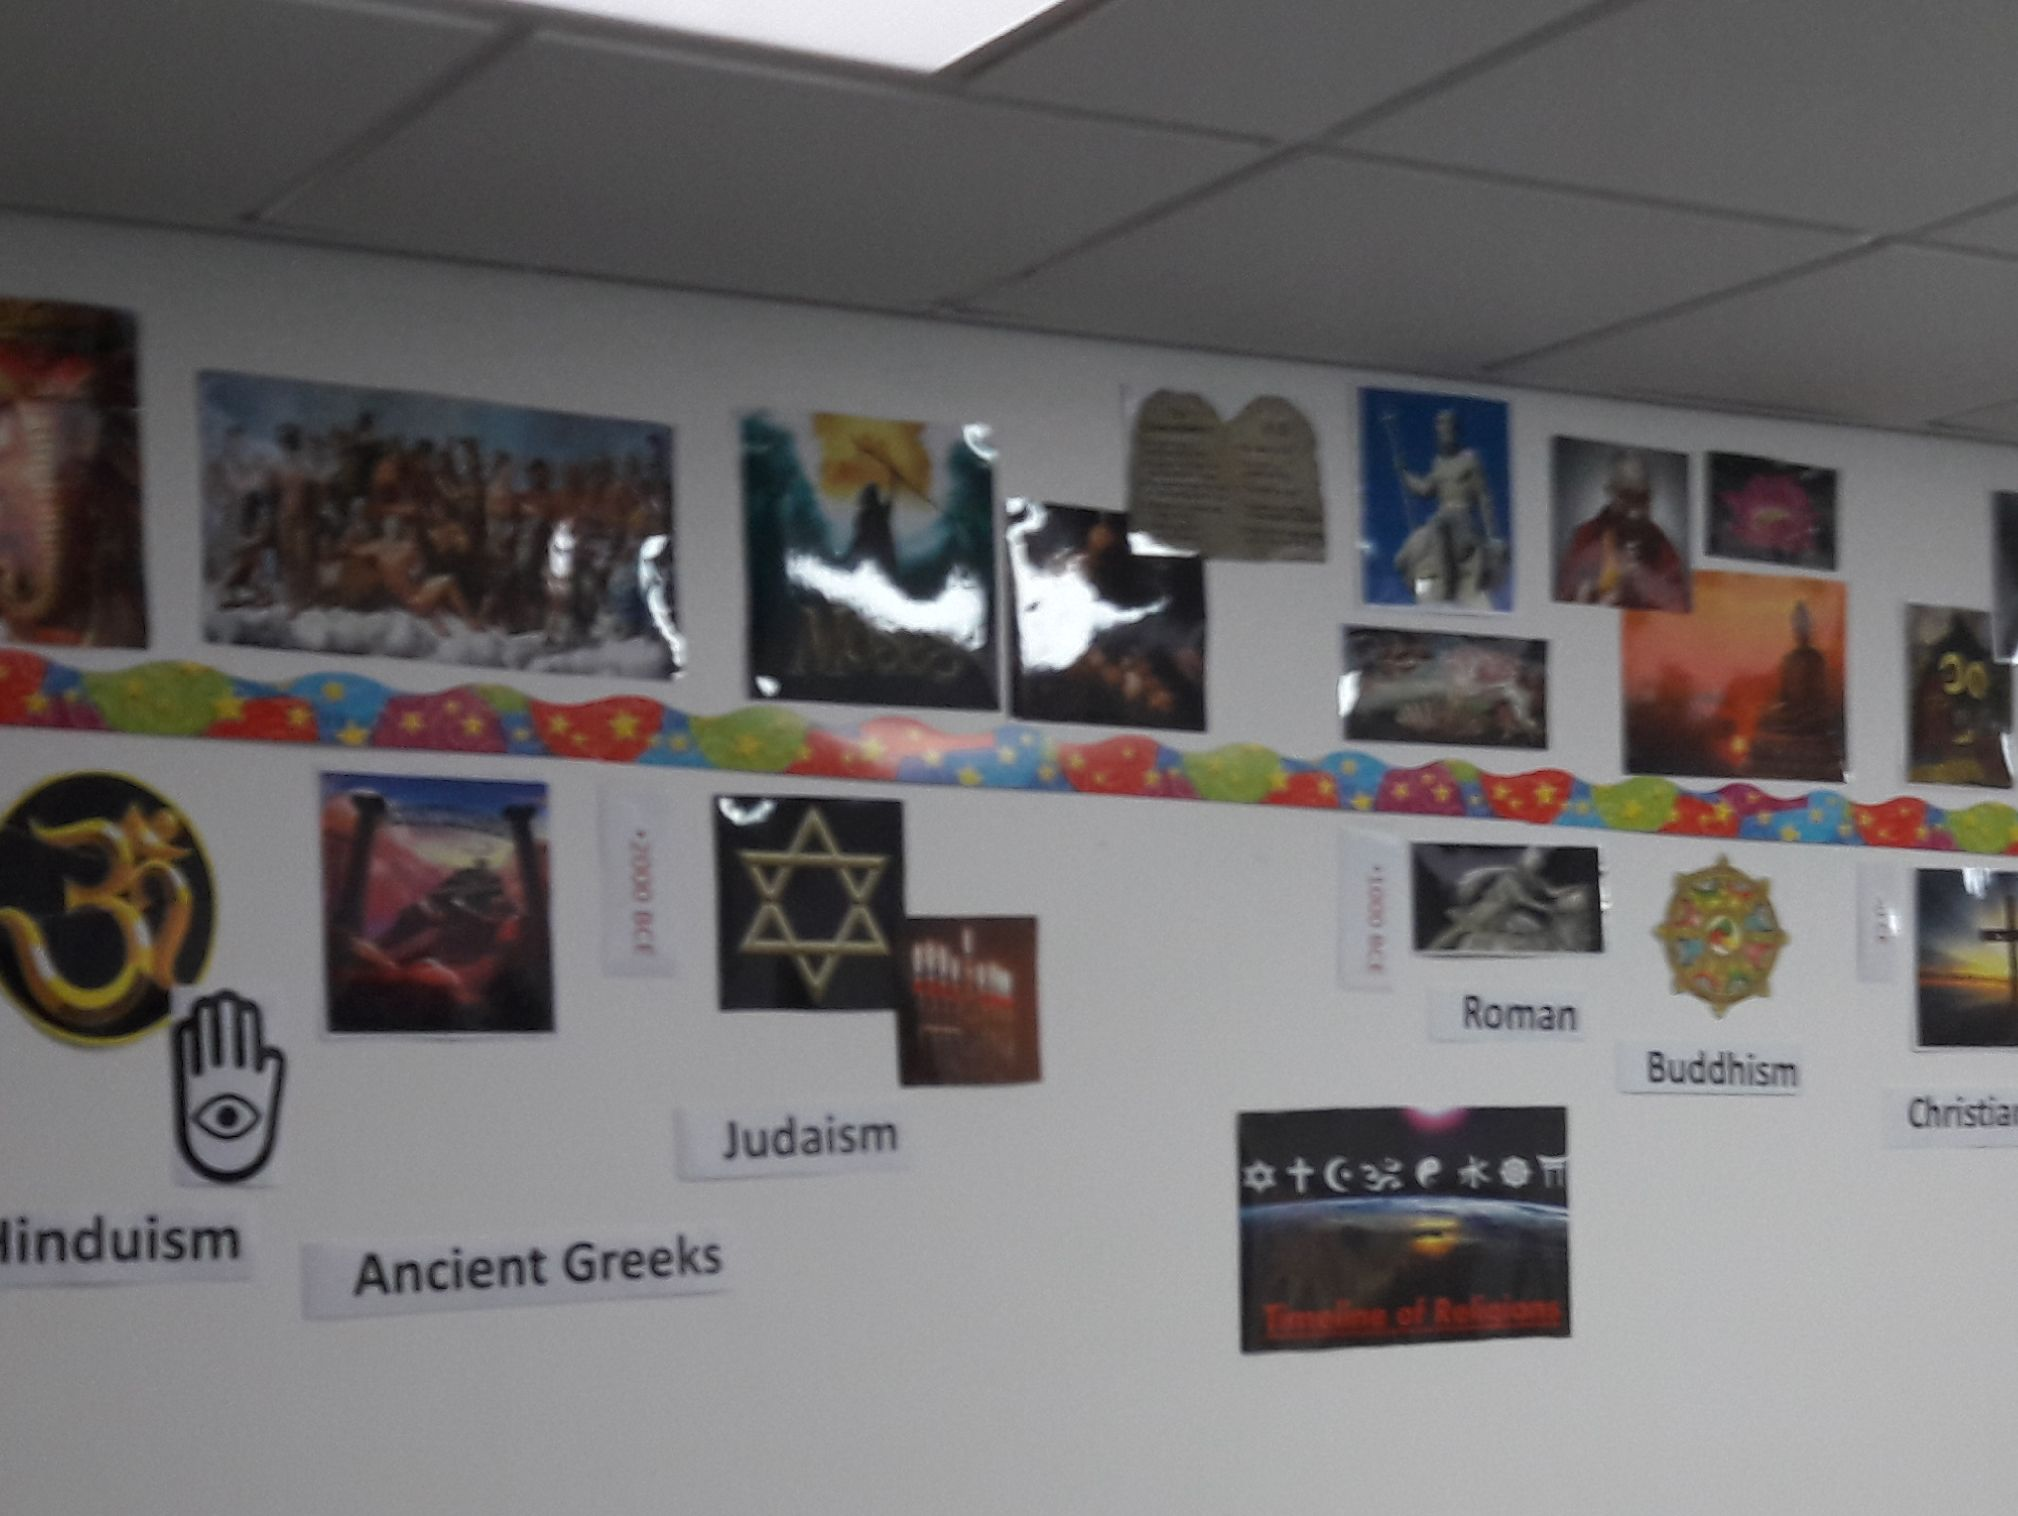 Timeline of Religions